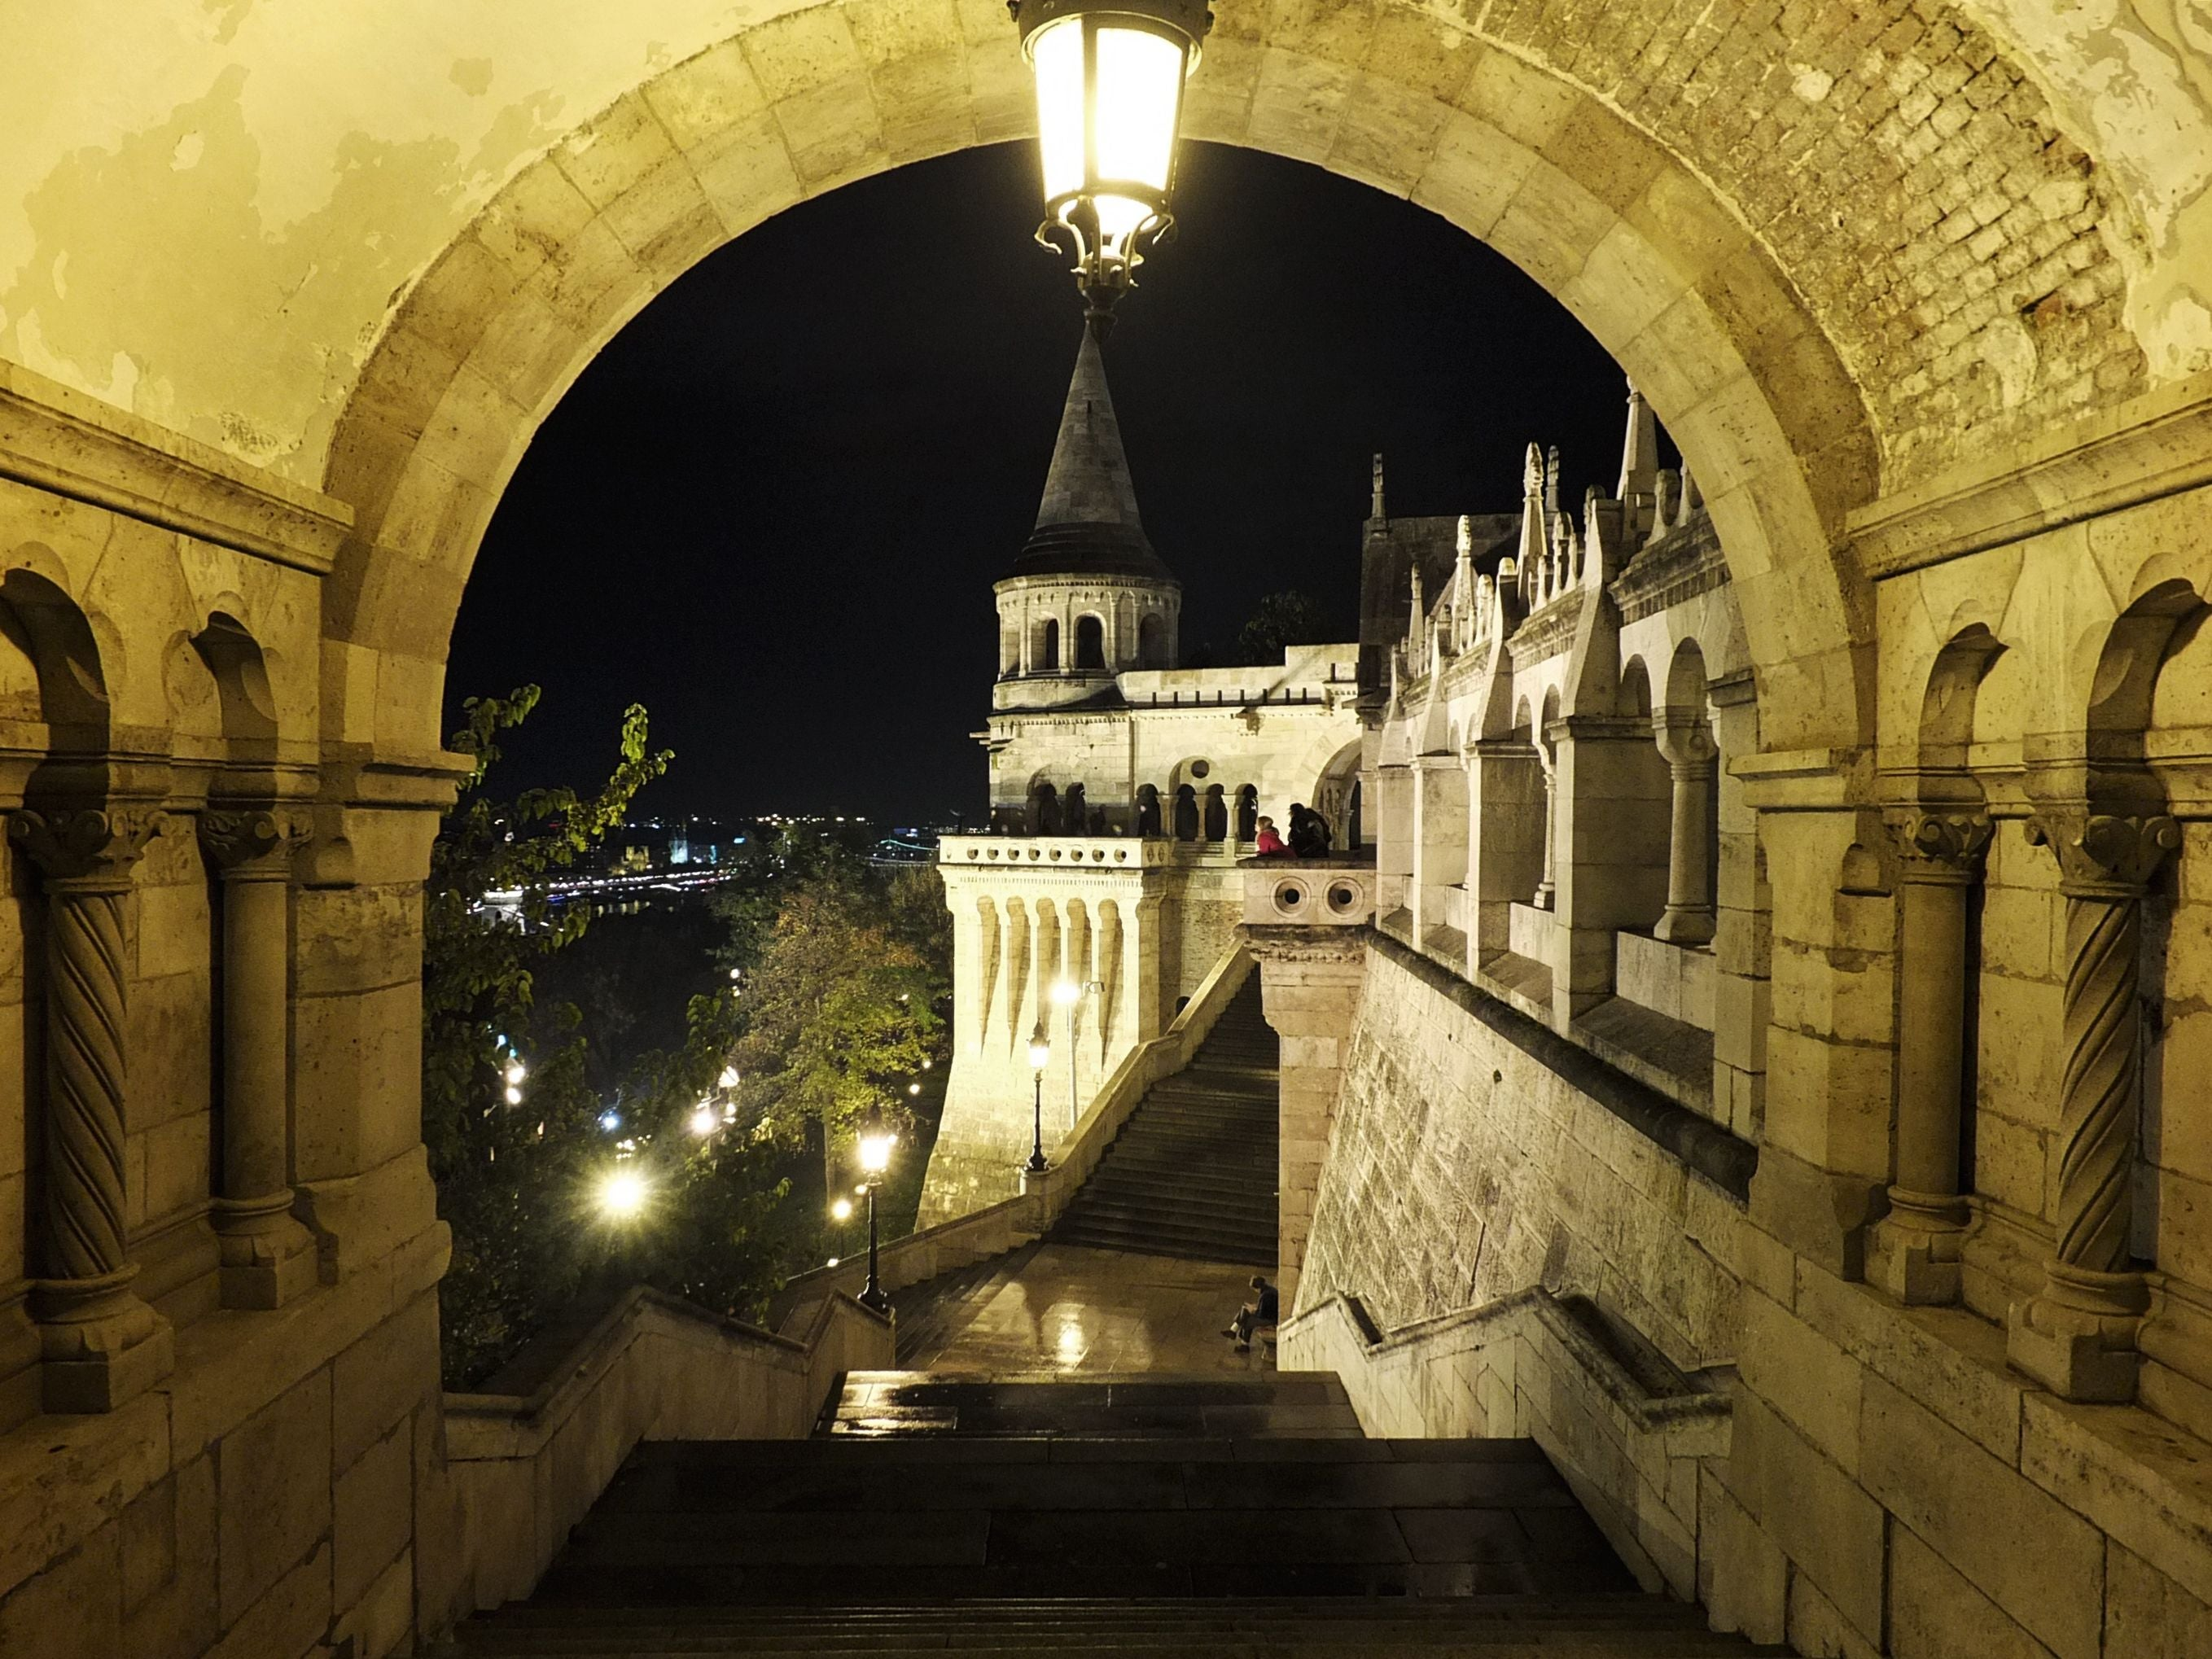 Aisle in Fisherman's Bastion